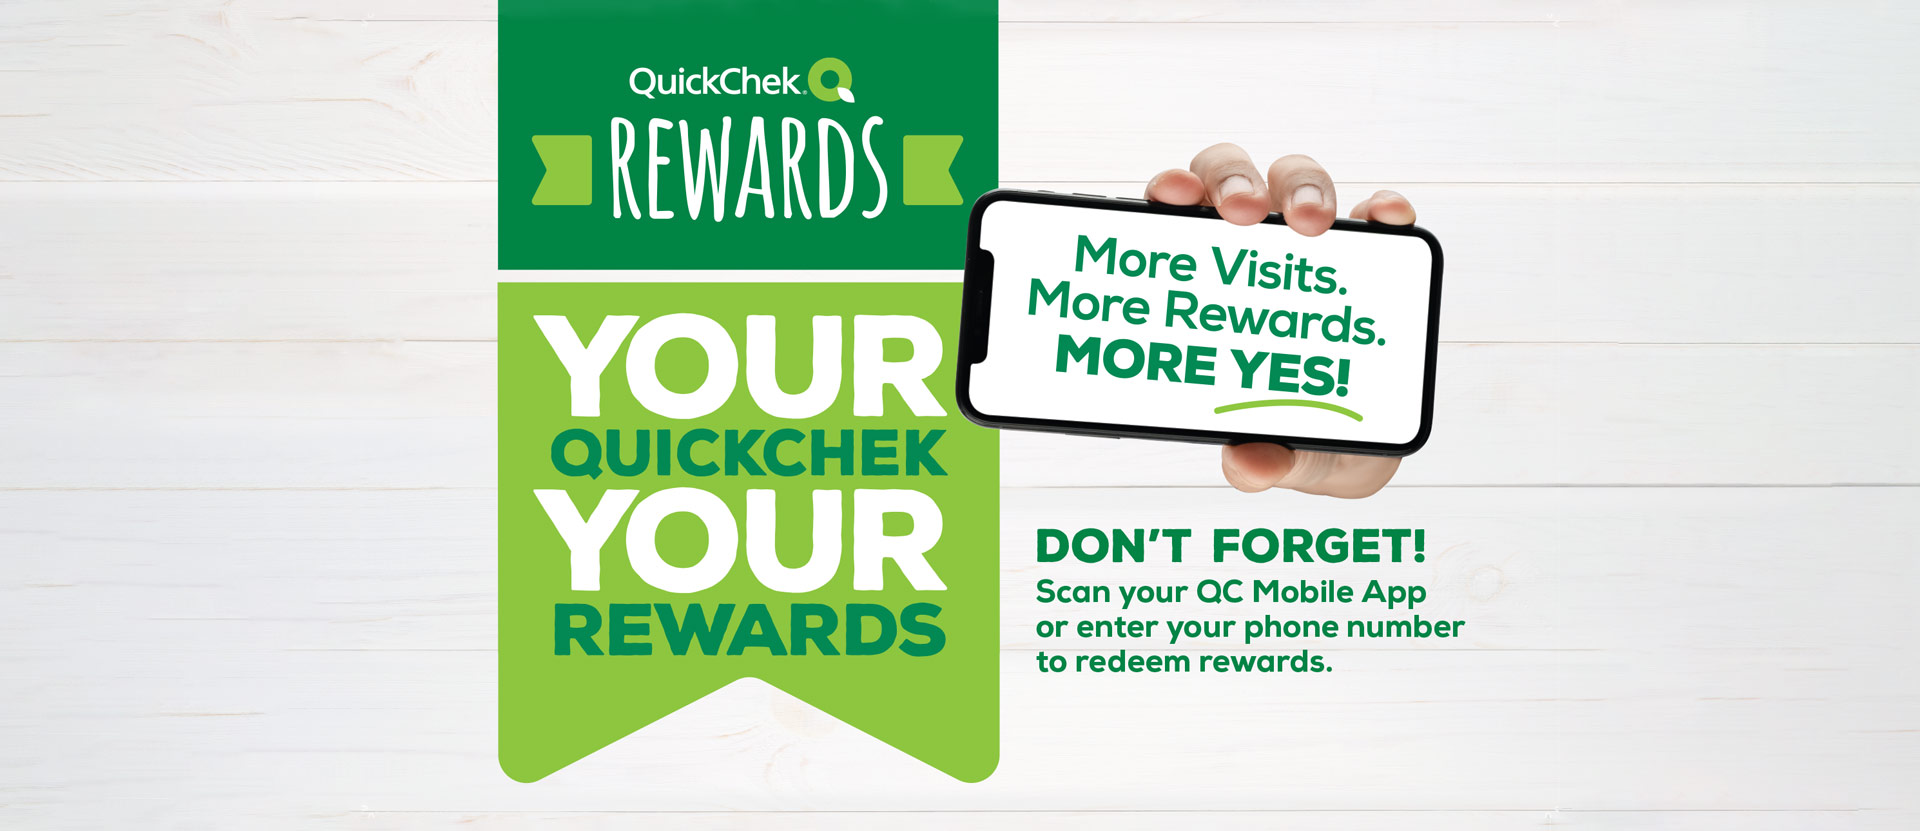 Mobile App Advertisement for QuickChek